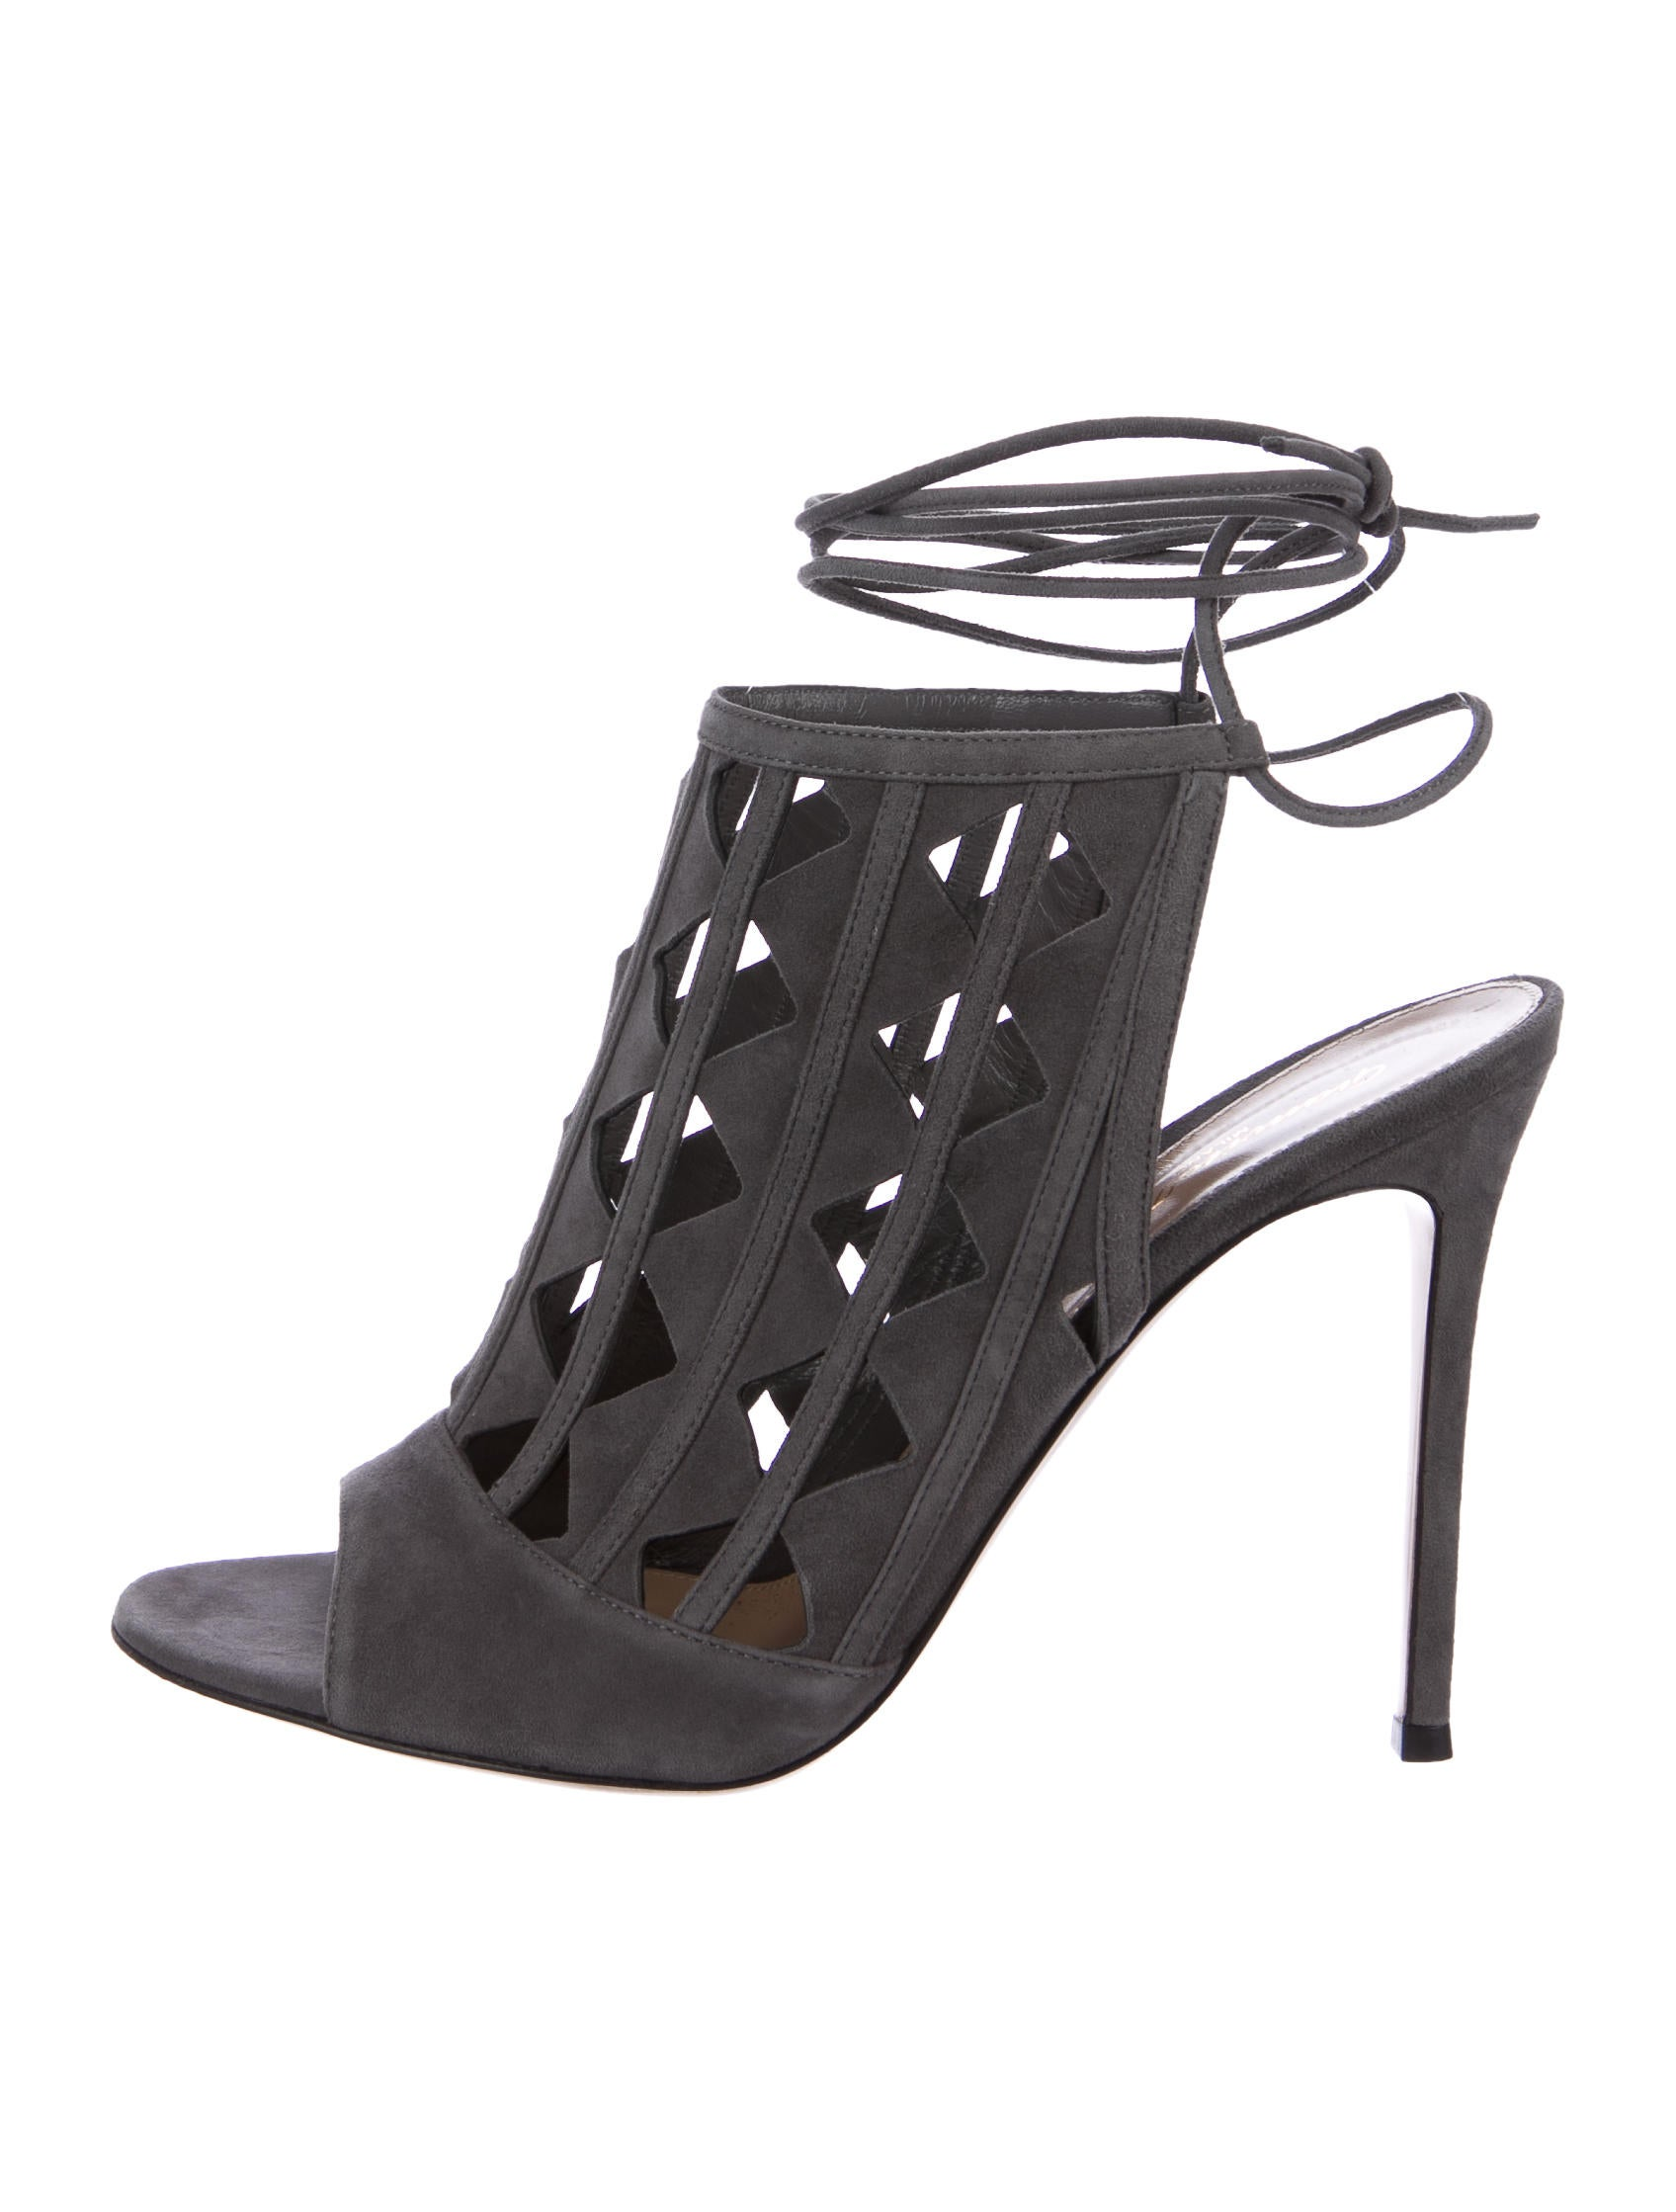 125068bf97256 Gianvito Rossi Maxine Laser Cut Sandals - Shoes - GIT24675